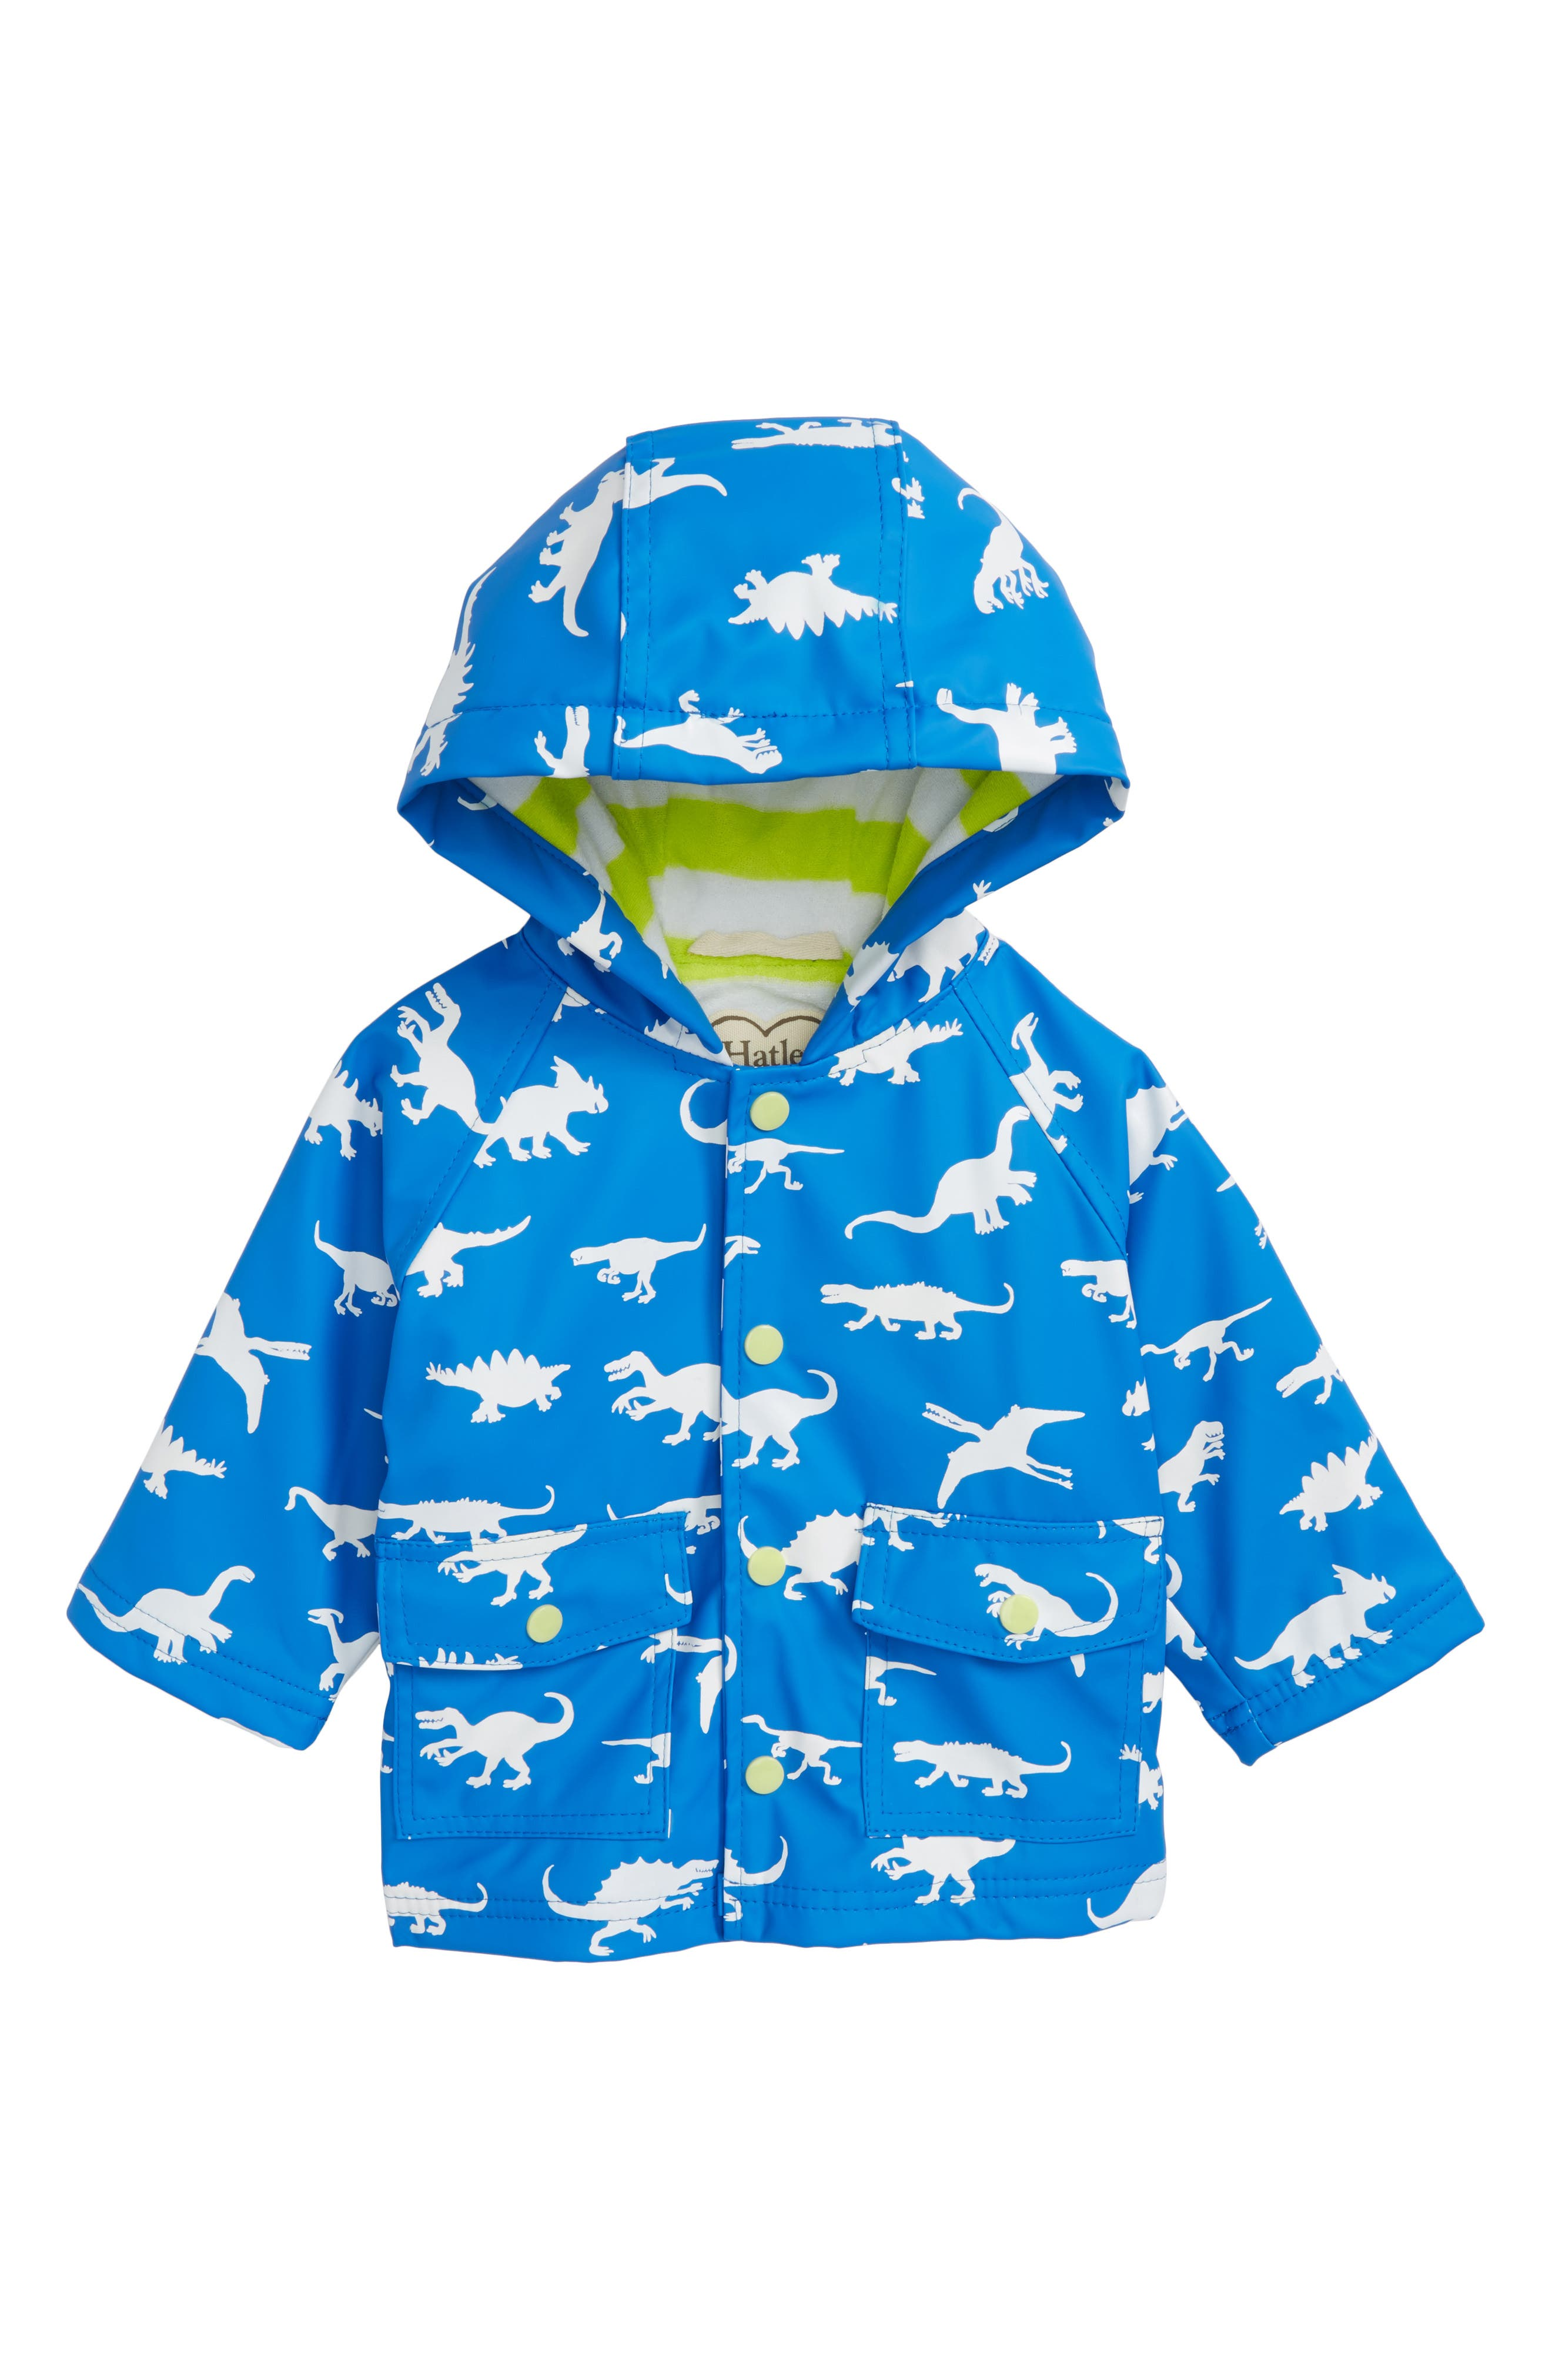 Dinosaur Menagerie Color Changing Hooded Raincoat,                             Main thumbnail 1, color,                             400